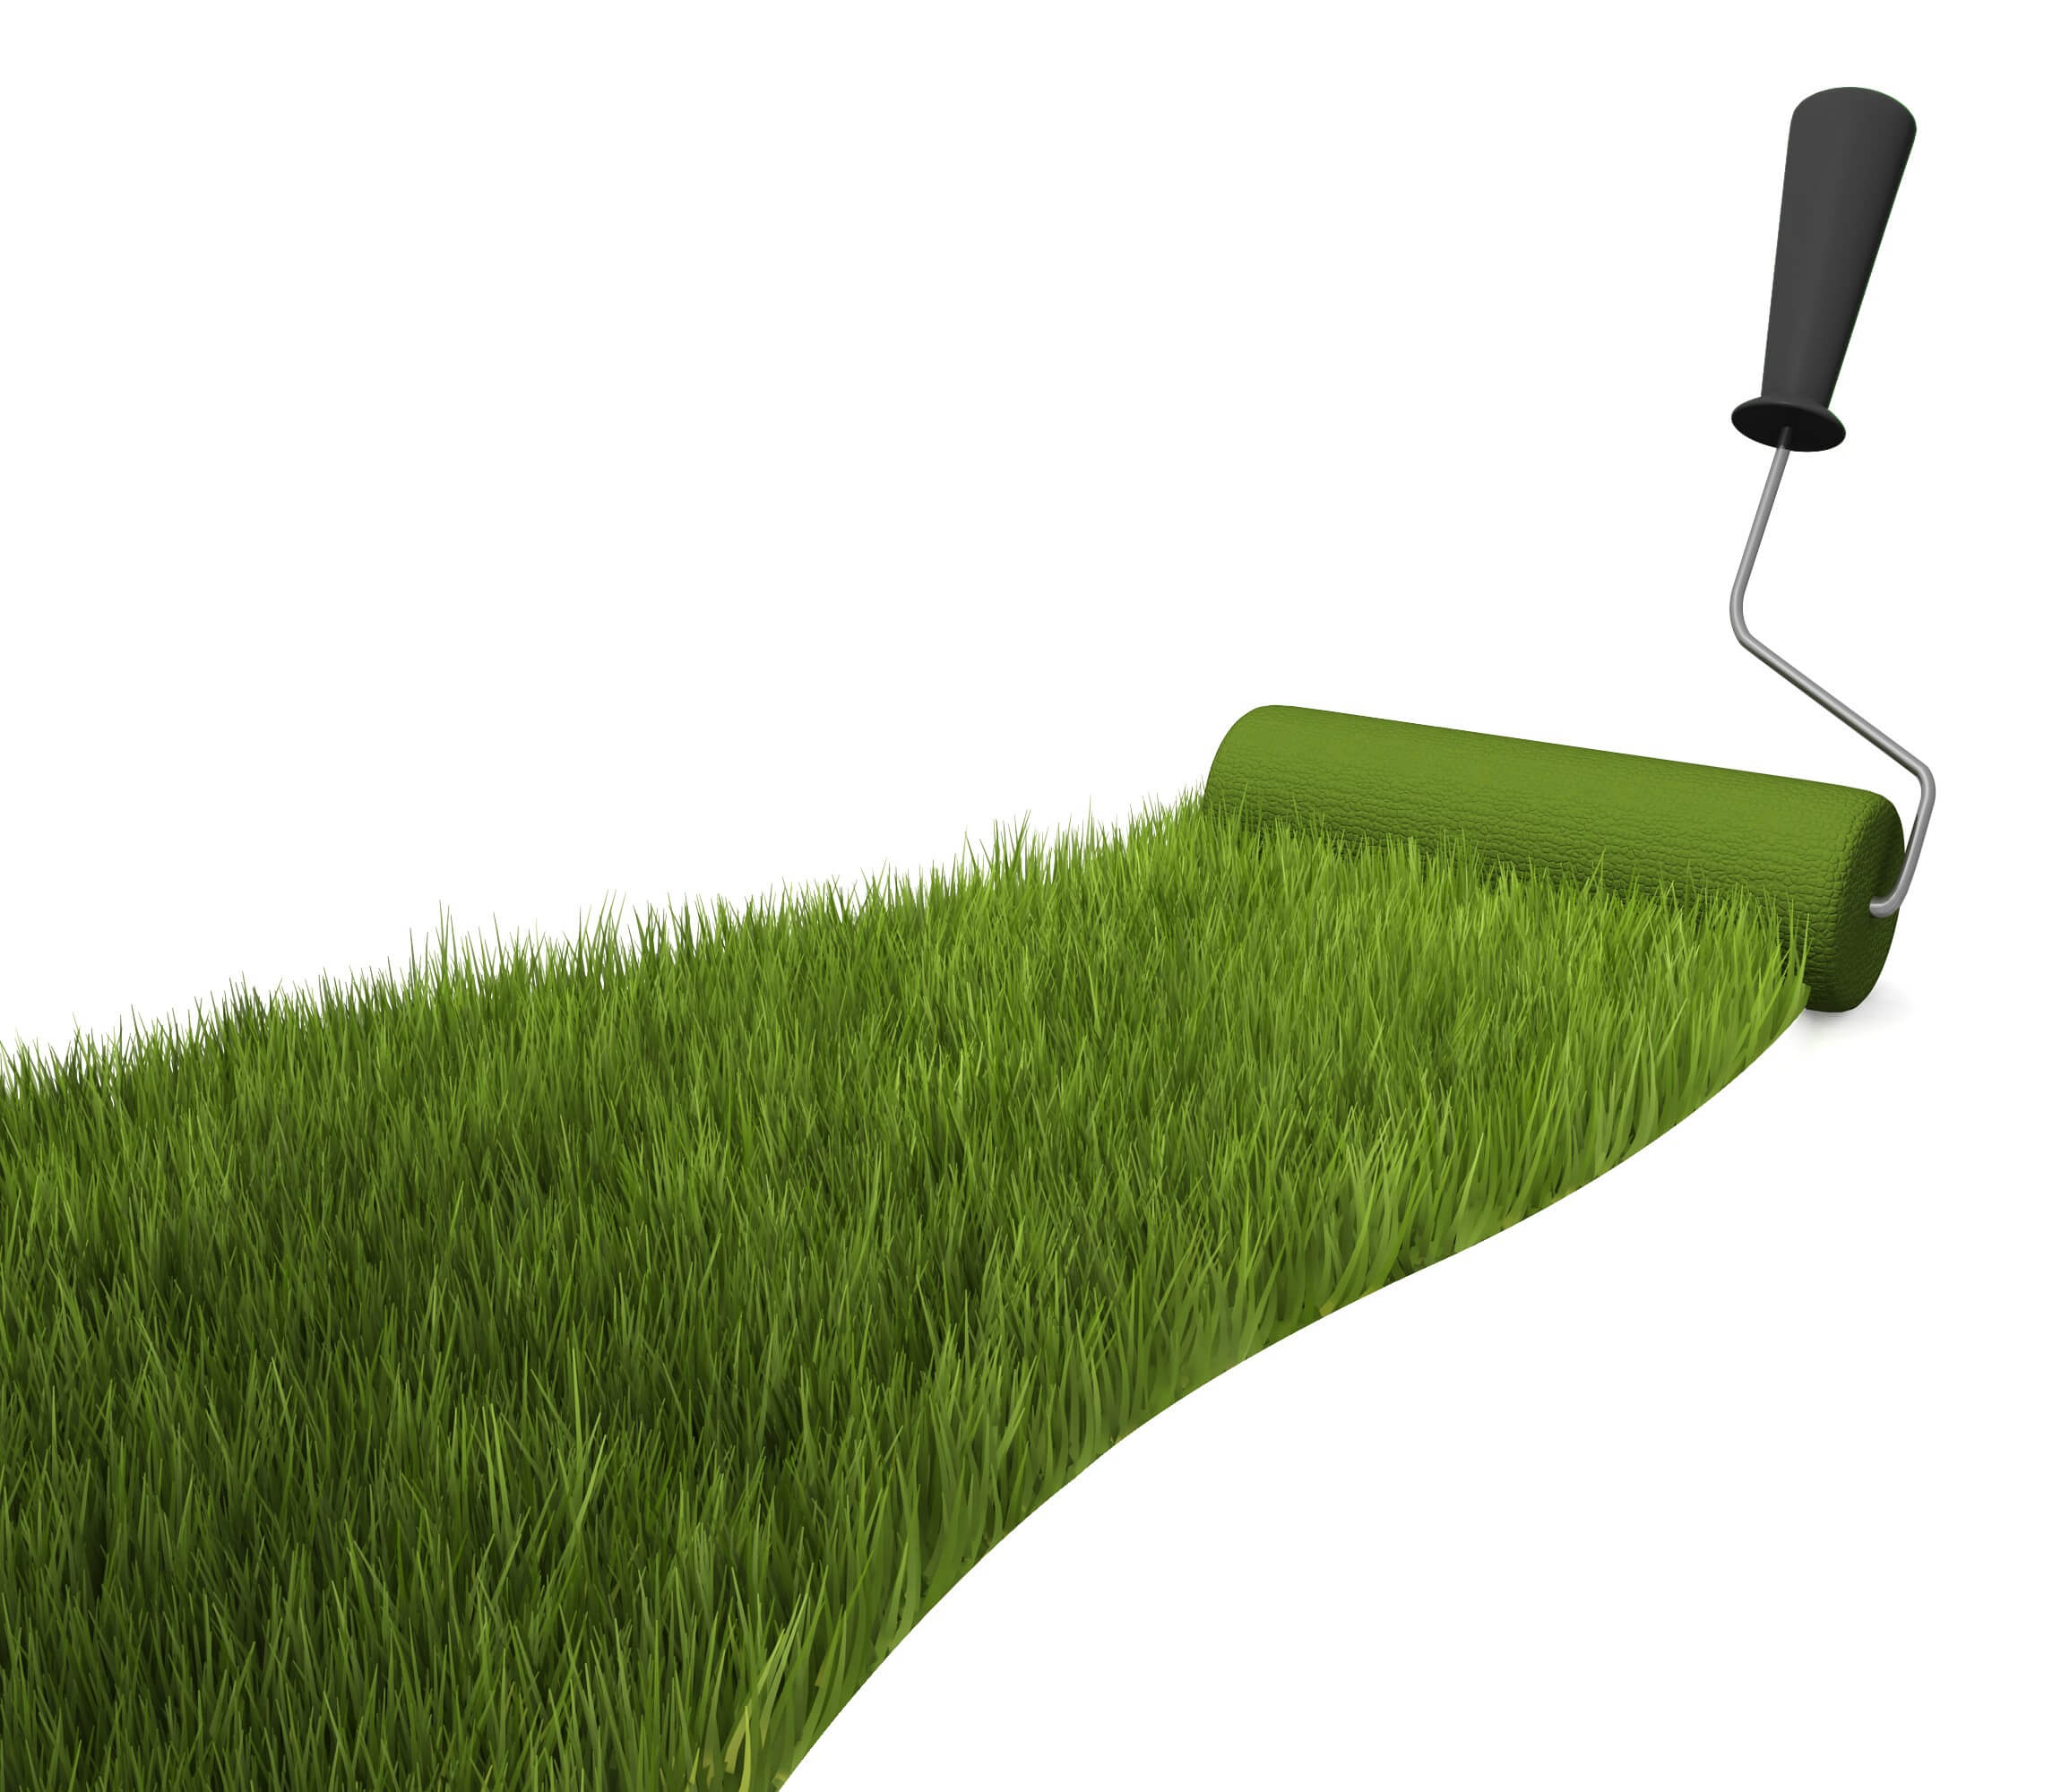 grass_ground_with_roller_stock_photo_slide01